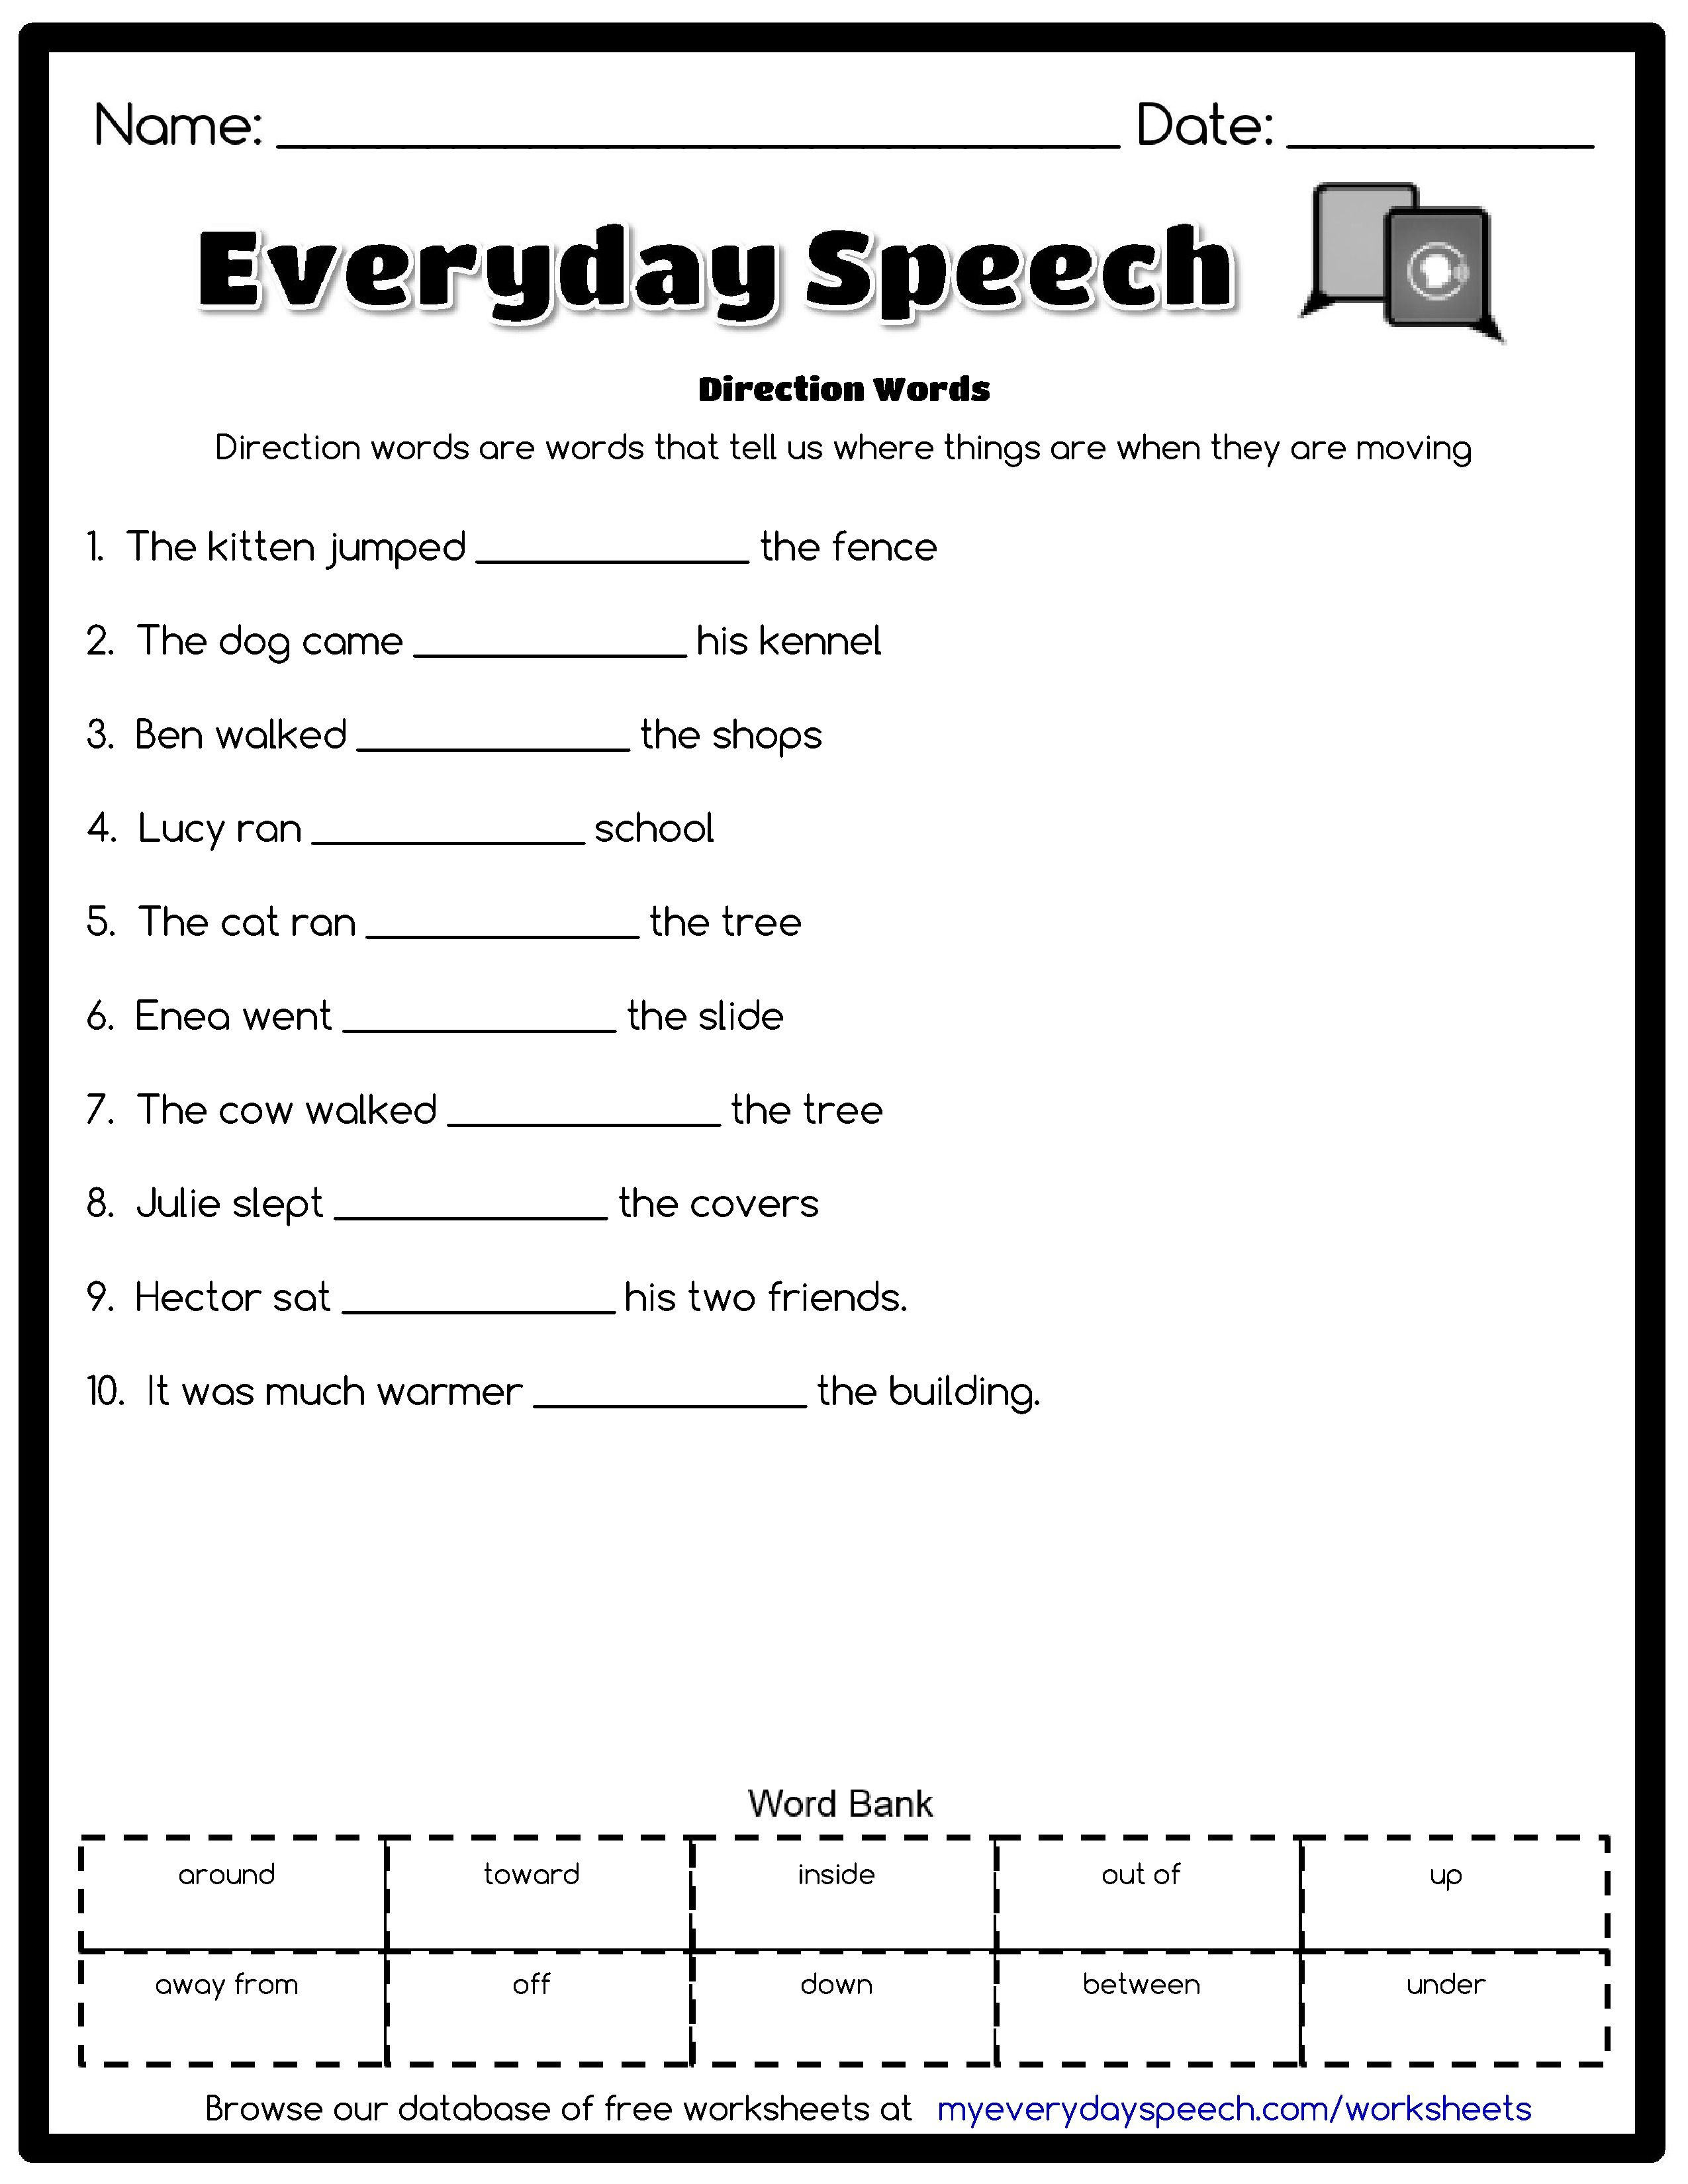 medium resolution of Check out the worksheet I just made using Everyday Speech's worksheet  creator! Direction Words - Direction words are wor…   Speech therapy  worksheets